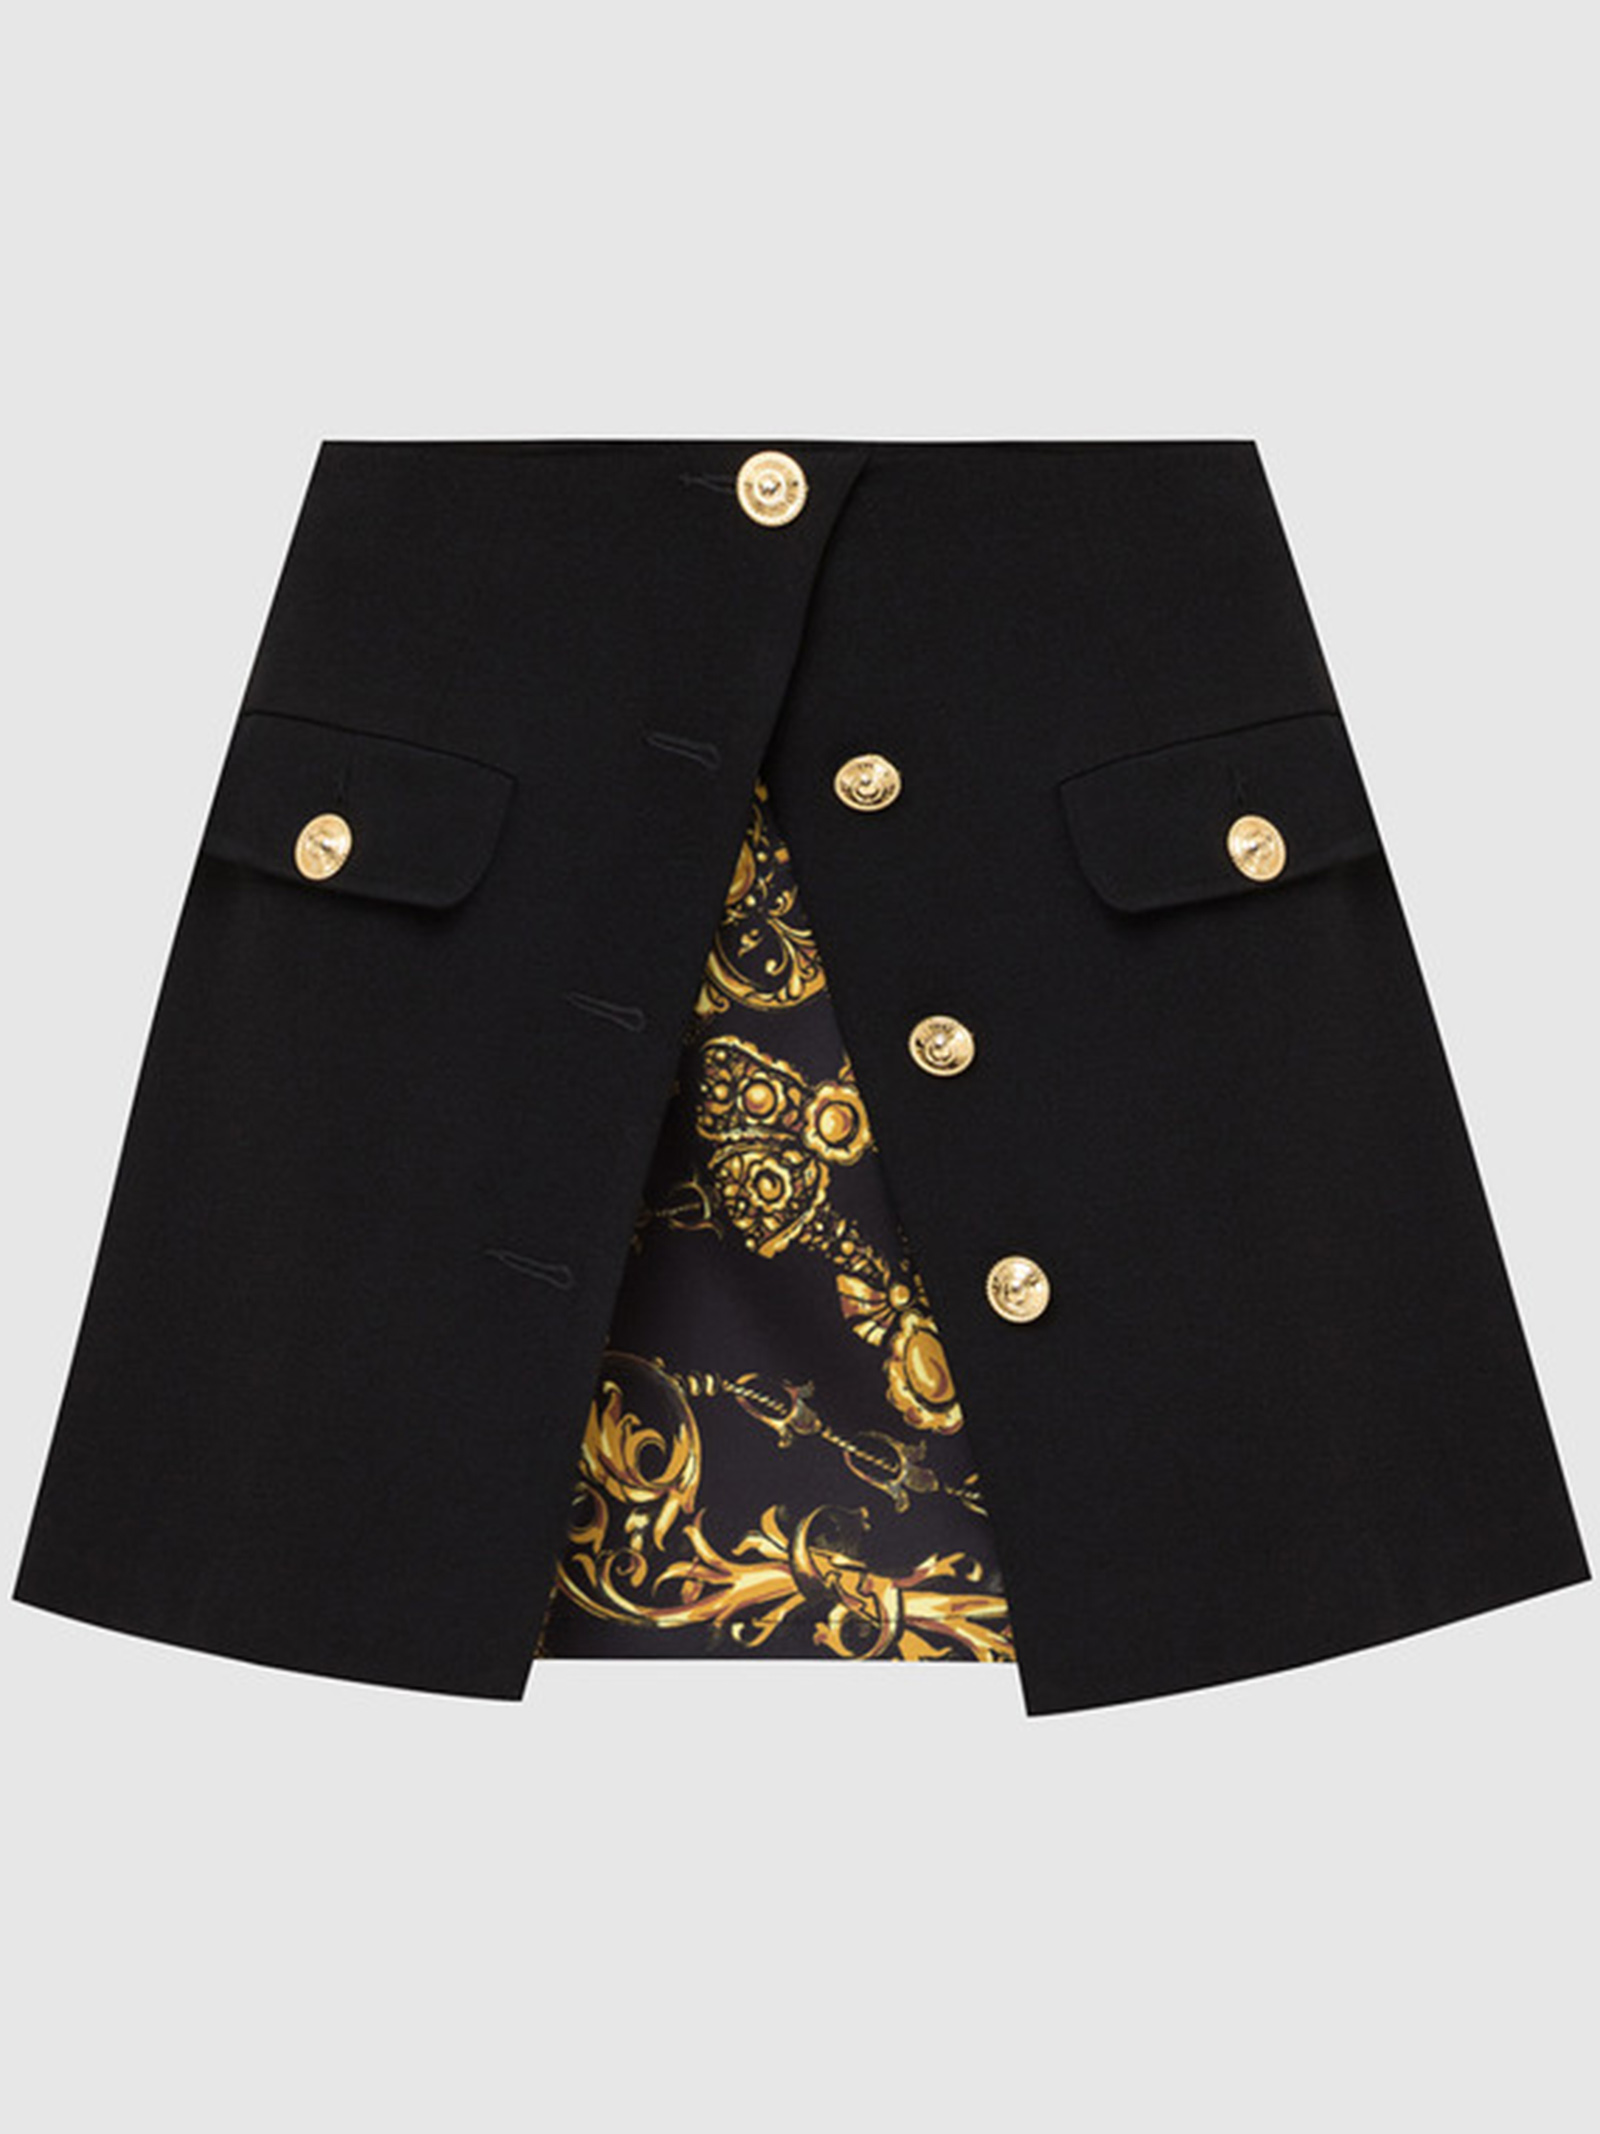 Skirt baroque  VERSACE JEANS | Skirts | 71HAE8A3899